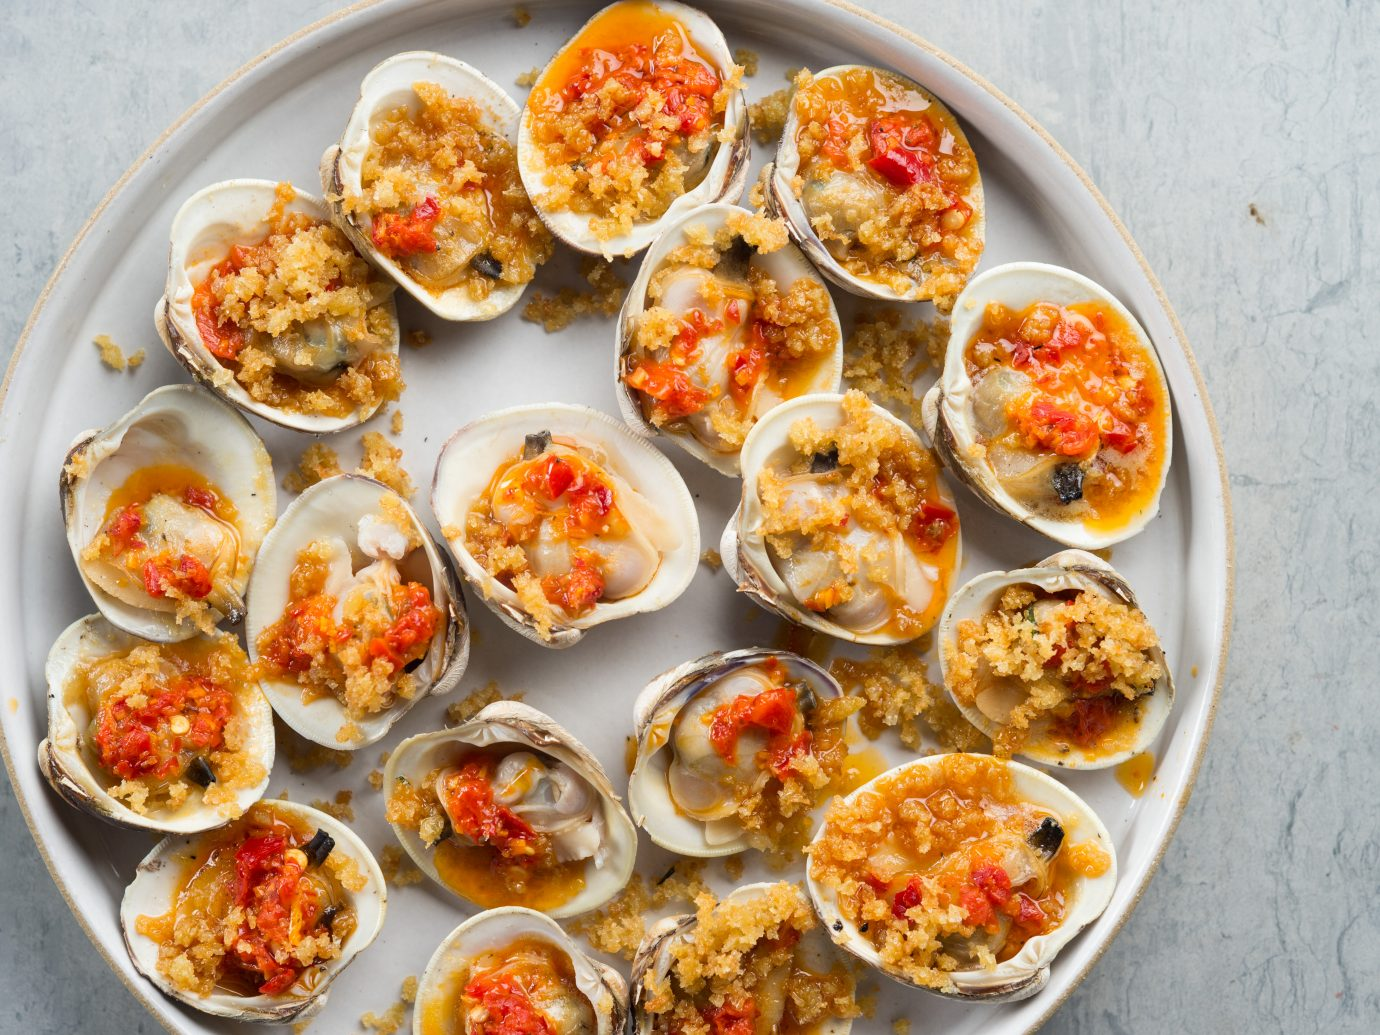 Grilled Clams, Calabrian Chili, Breadcrumbs